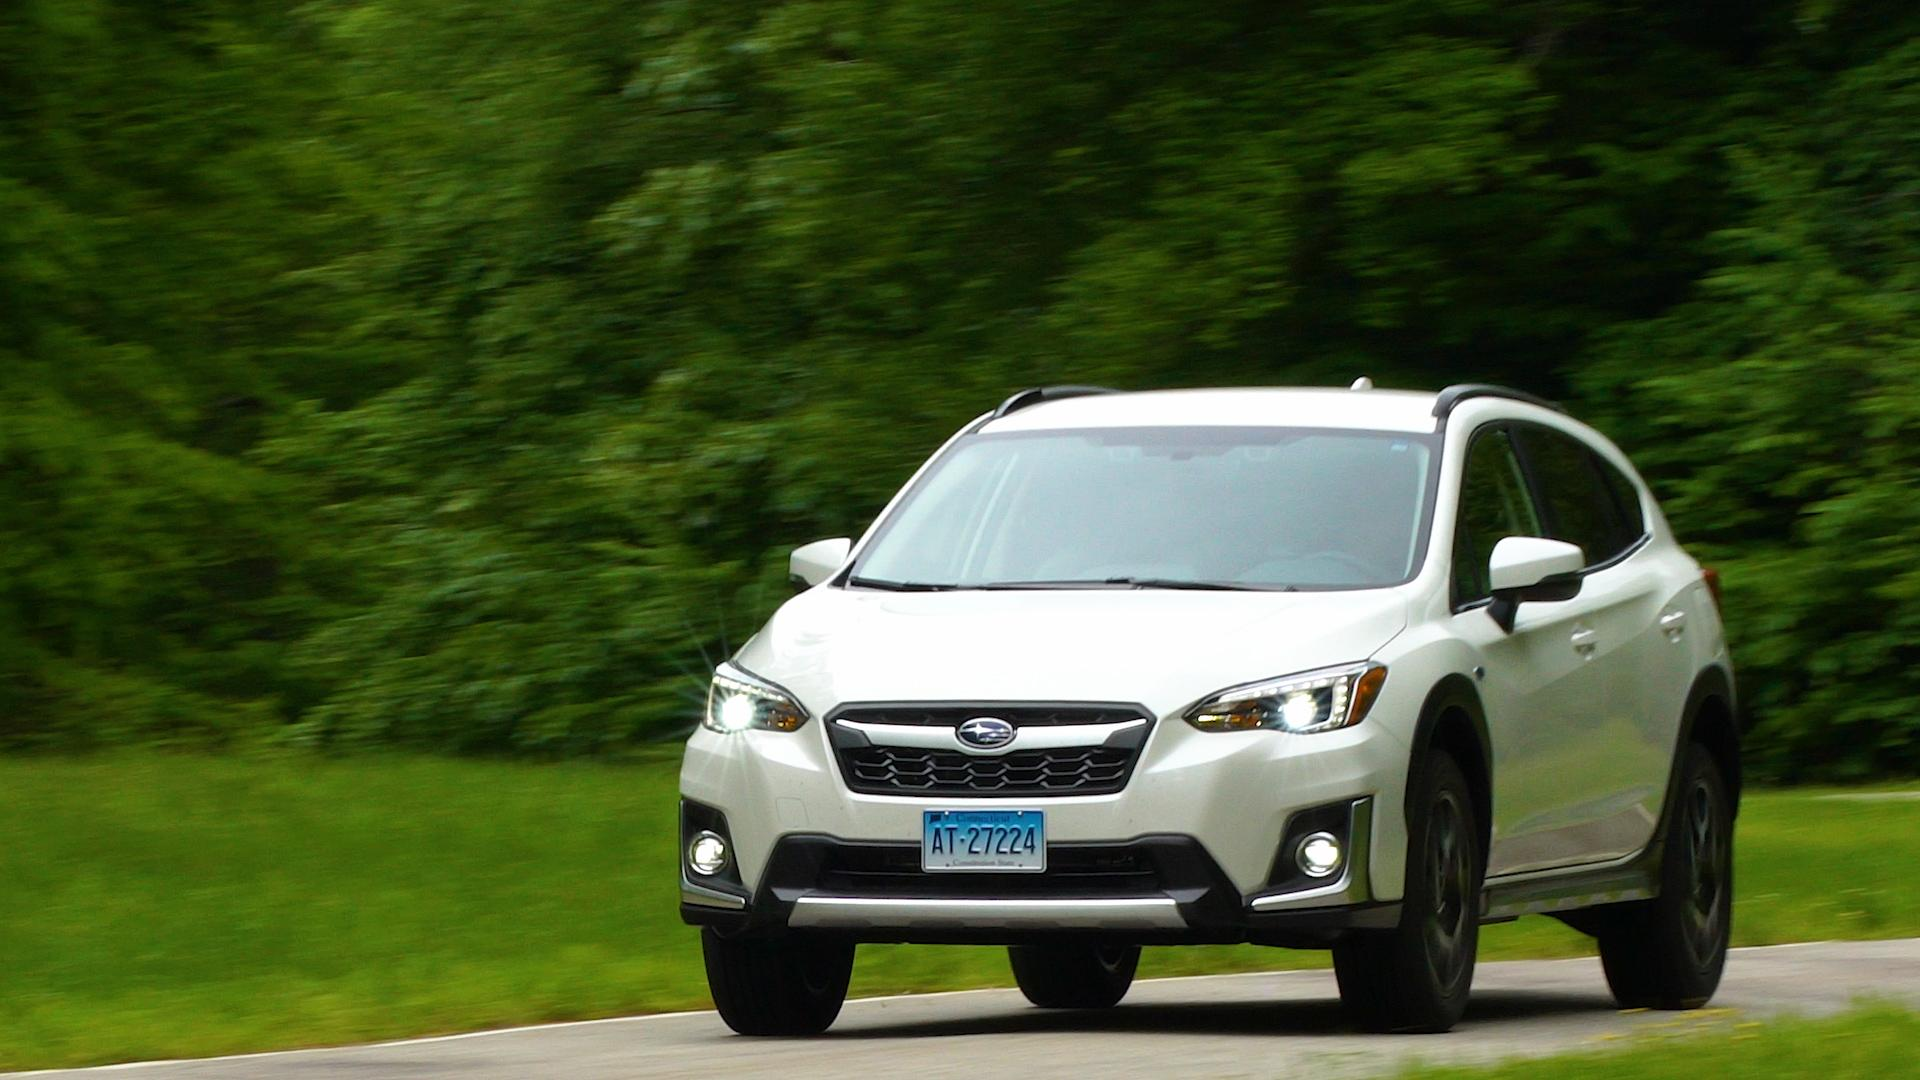 2019 Subaru Crosstrek Reviews, Ratings, Prices - Consumer Reports